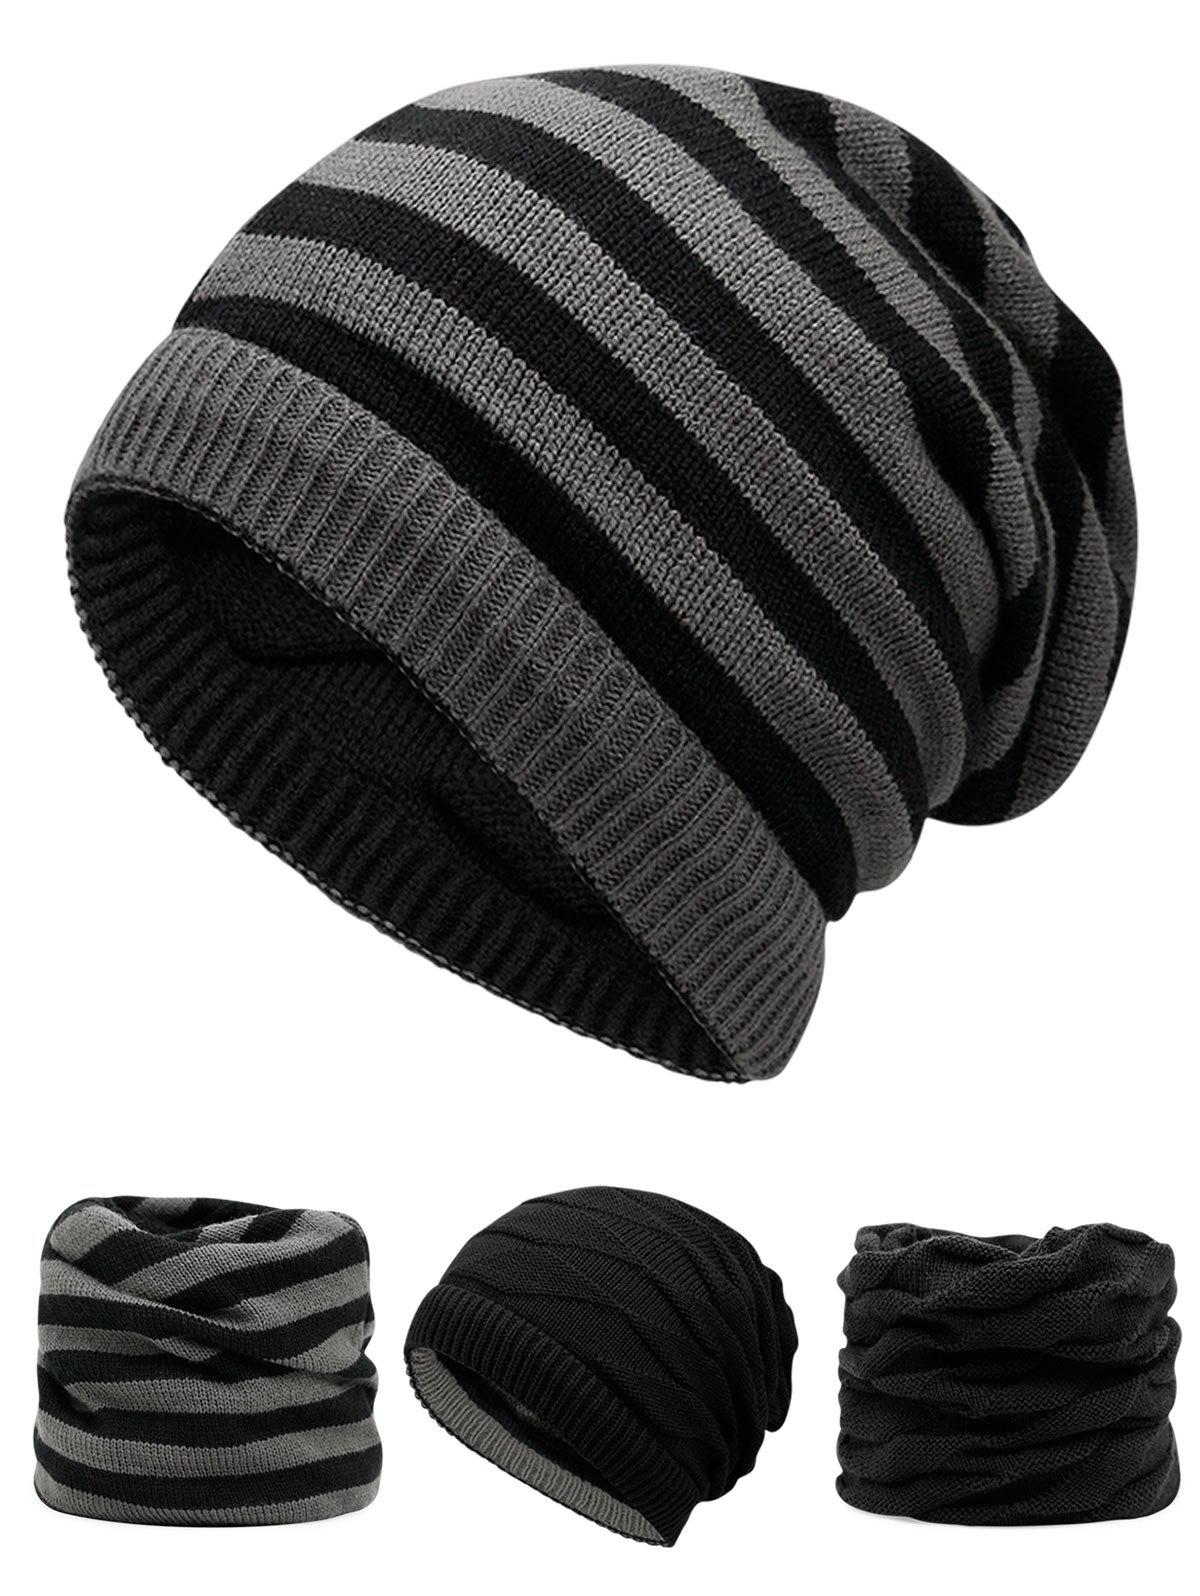 Ponytail Hole Decorated Lining Thicken Knit Beanie hot winter beanie knit crochet ski hat plicate baggy oversized slouch unisex cap